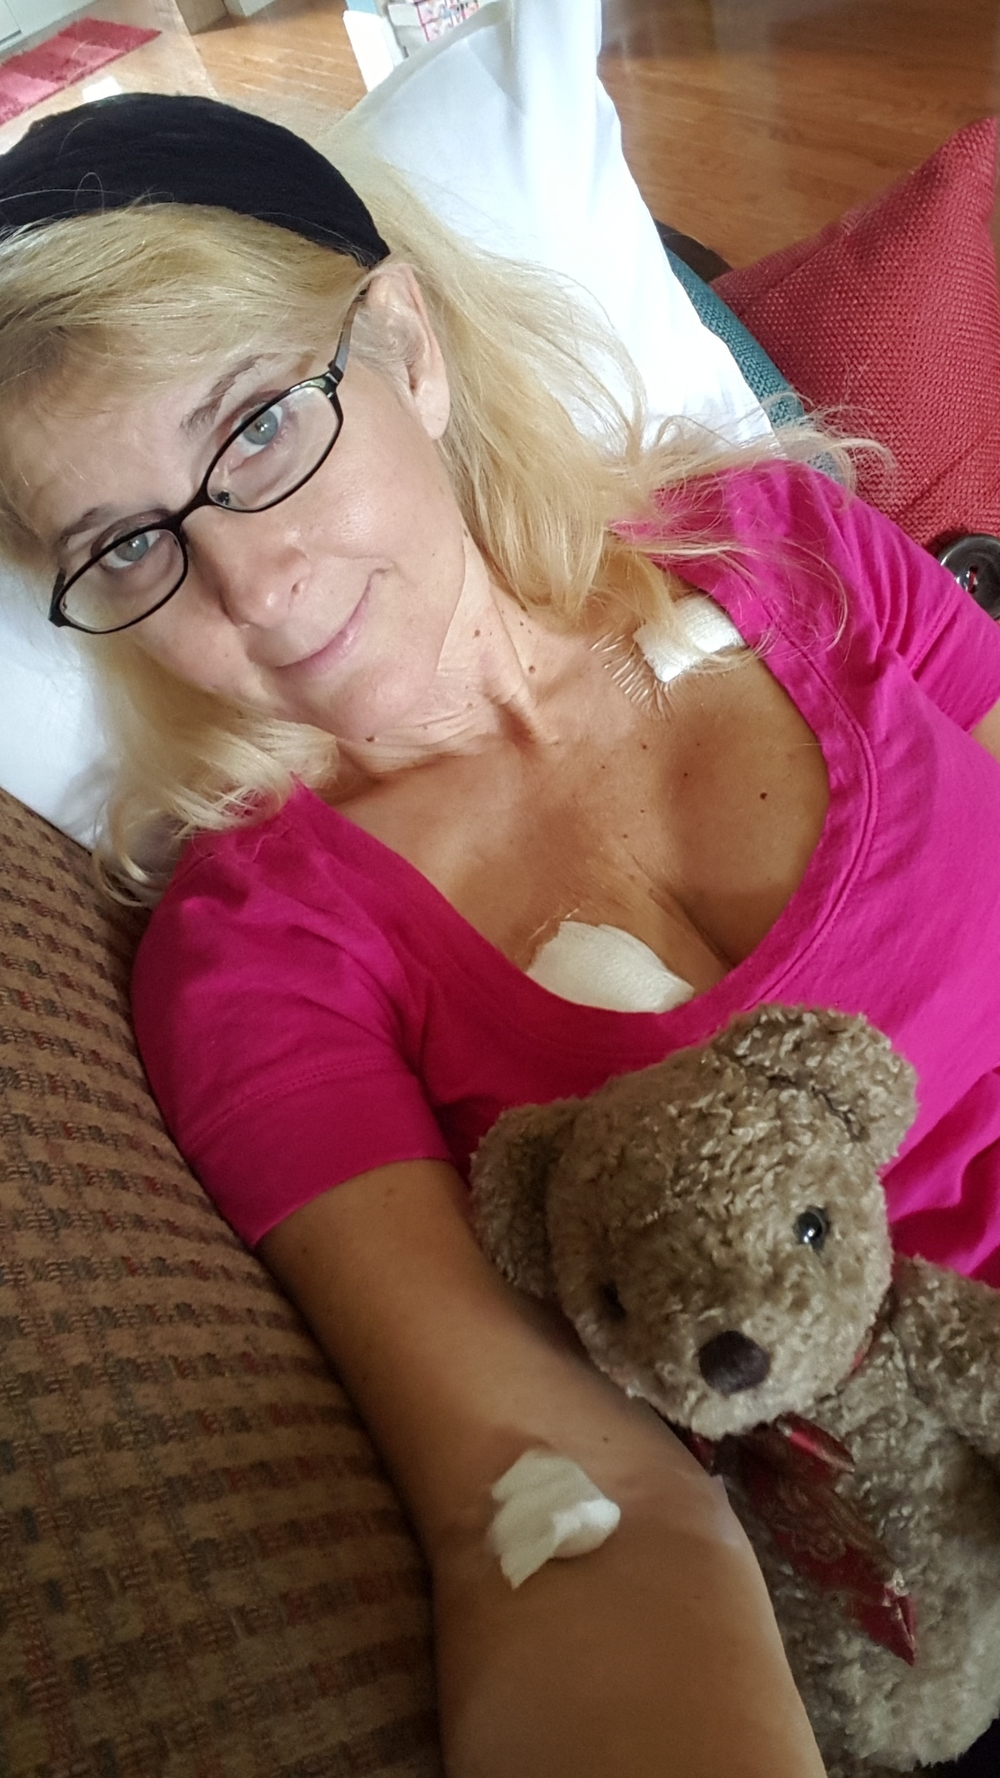 Resting comfortably at home after my lumpectomy.